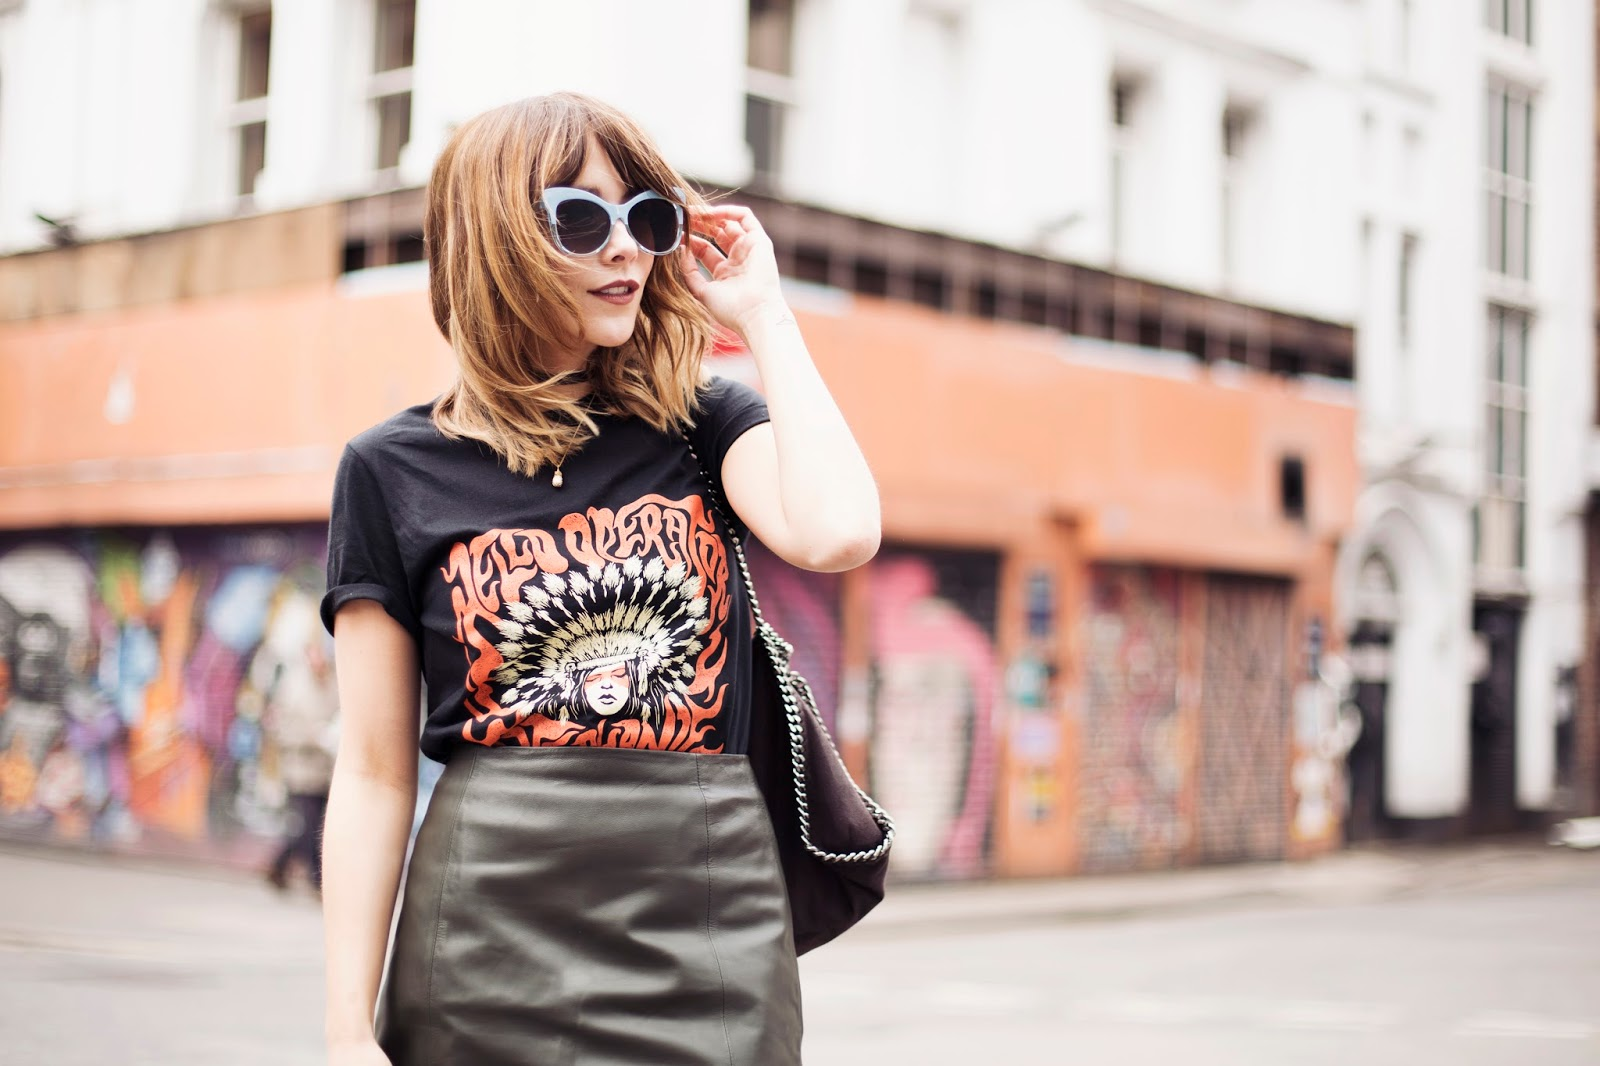 Megan Ellaby shows how to wear a band tee